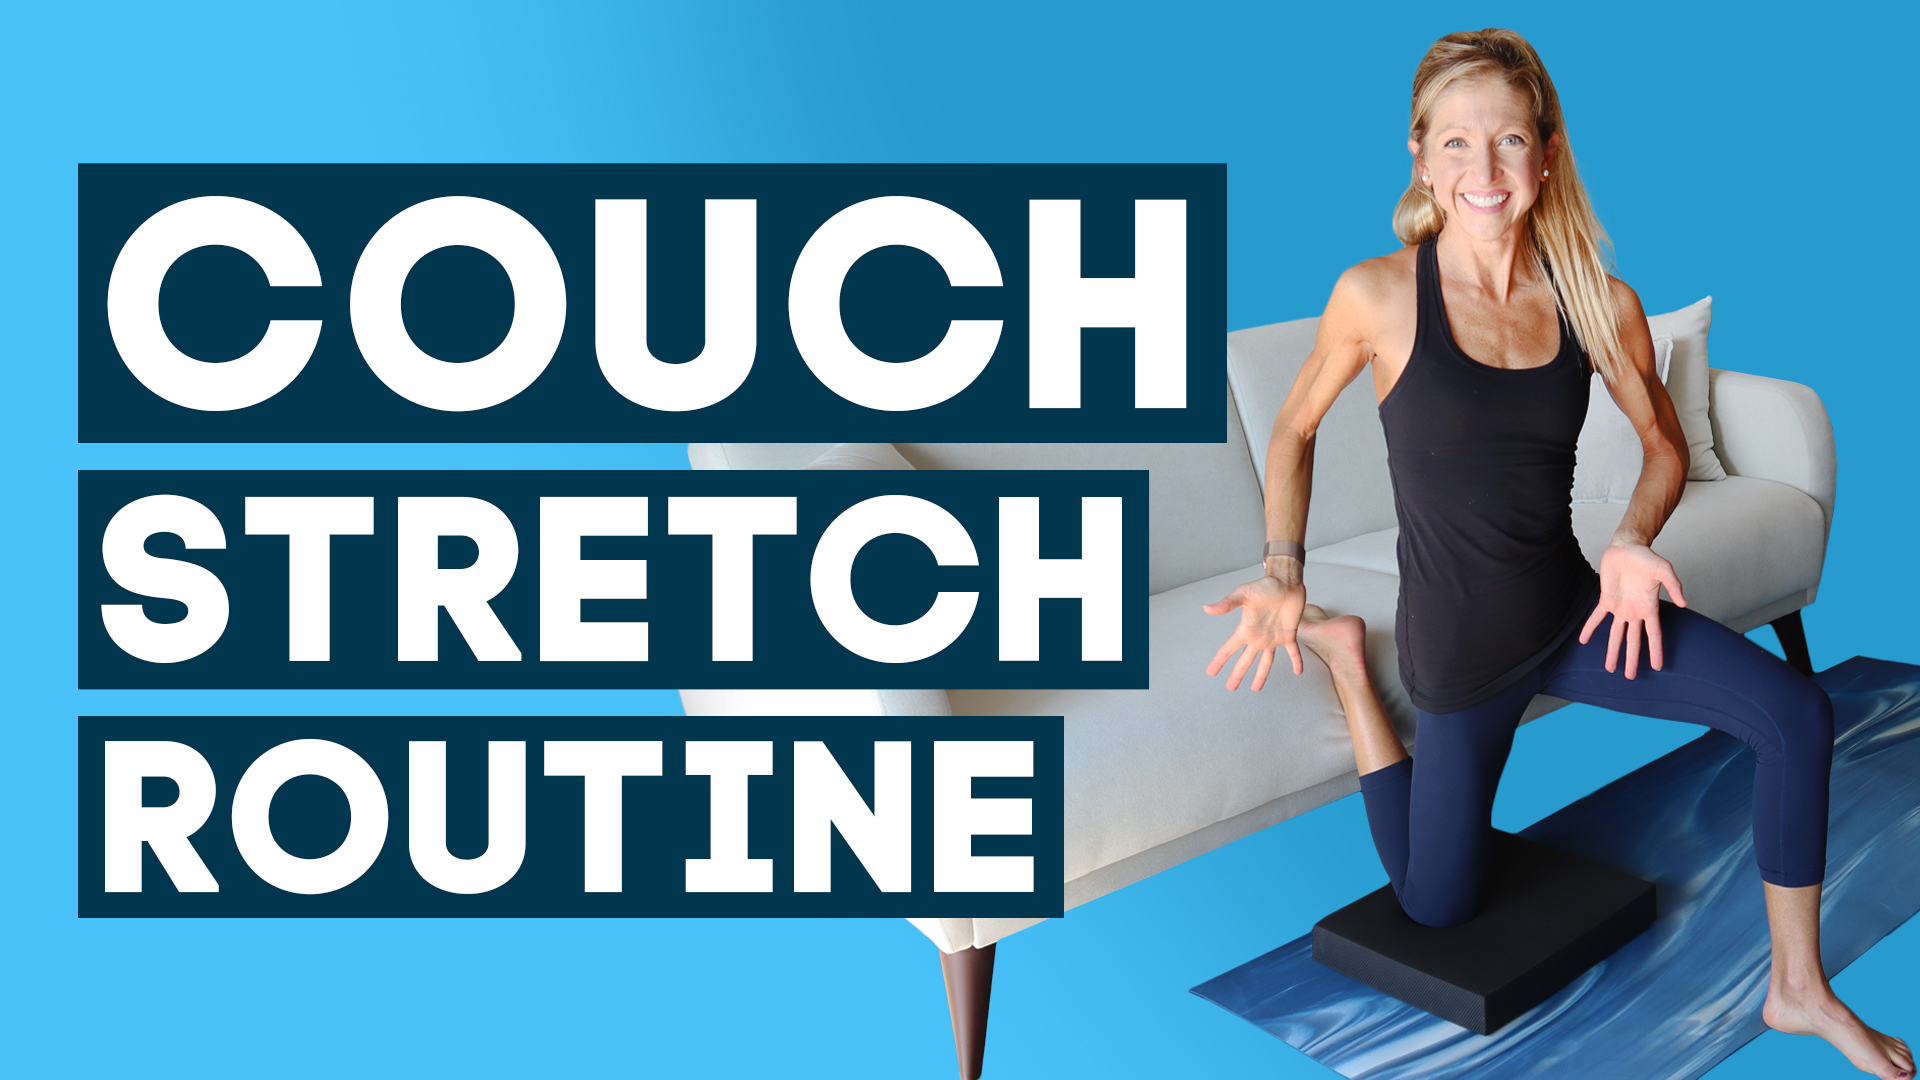 couch stretch routine